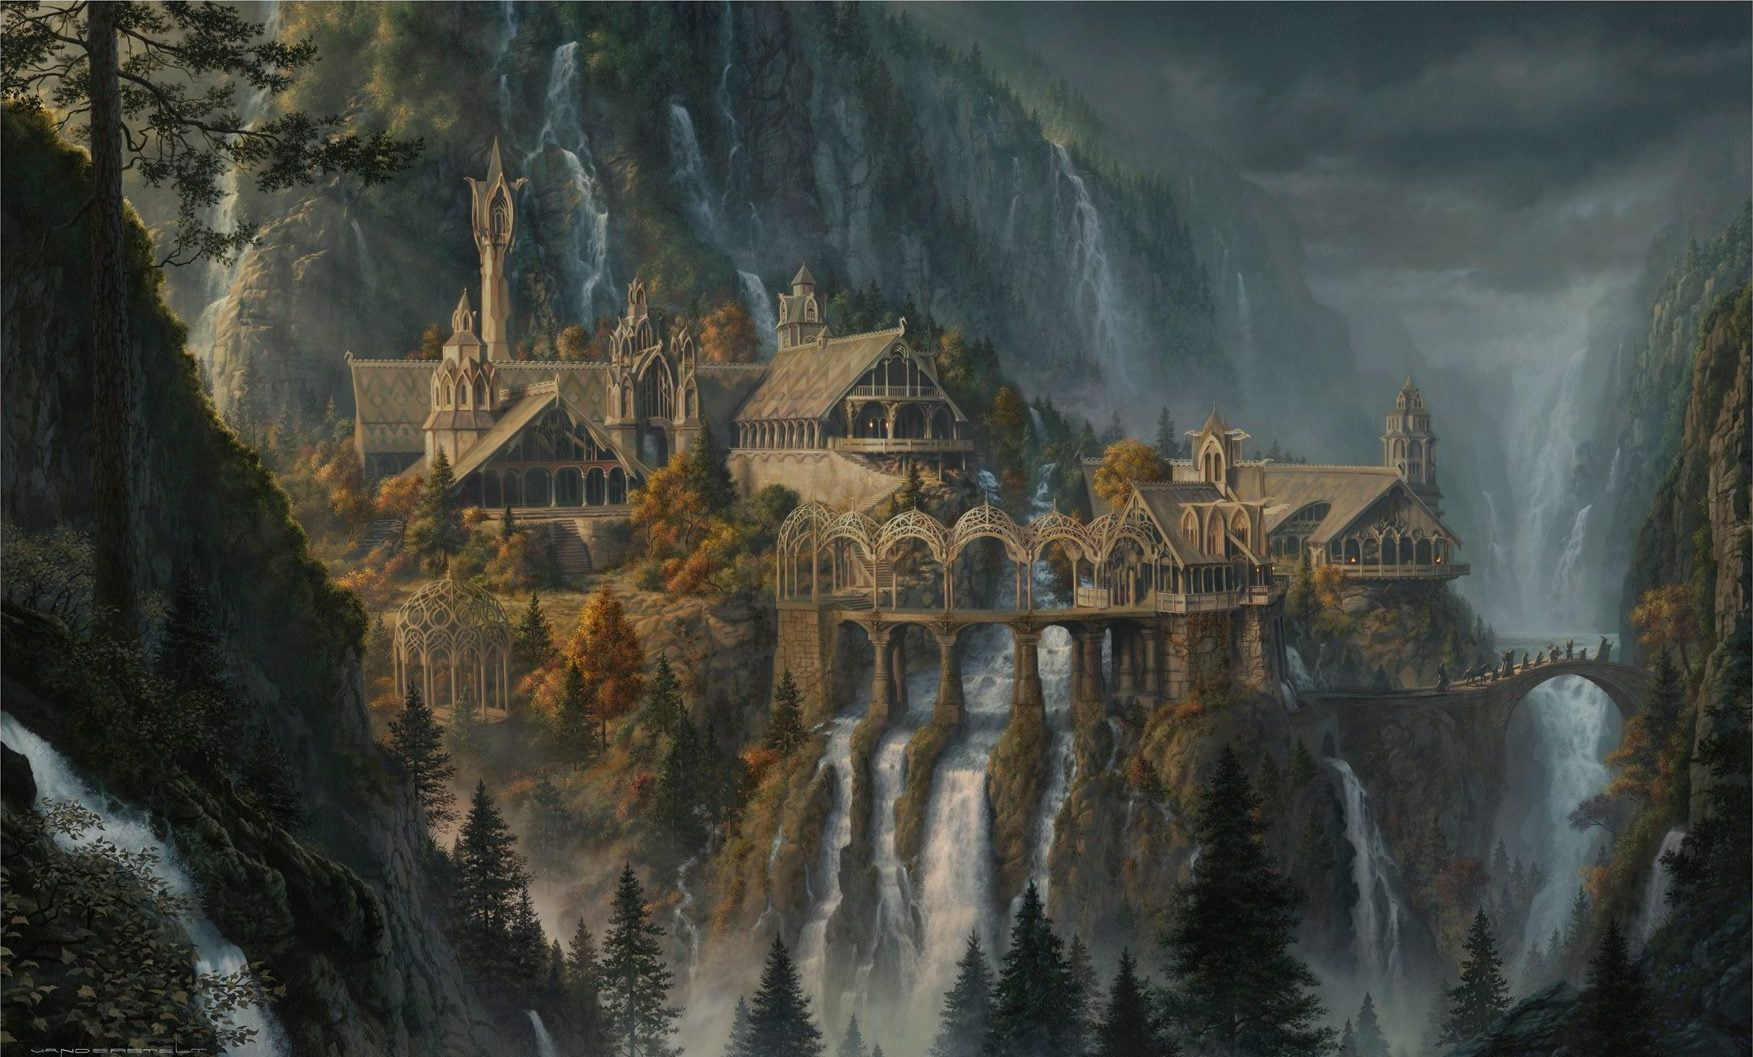 Gray Castle Illustration The Lord Of The Rings Waterfall J R R Tolkien Rivendell Artwork Fantasy Art 720p Castle Illustration Fantasy Art Hd Wallpaper